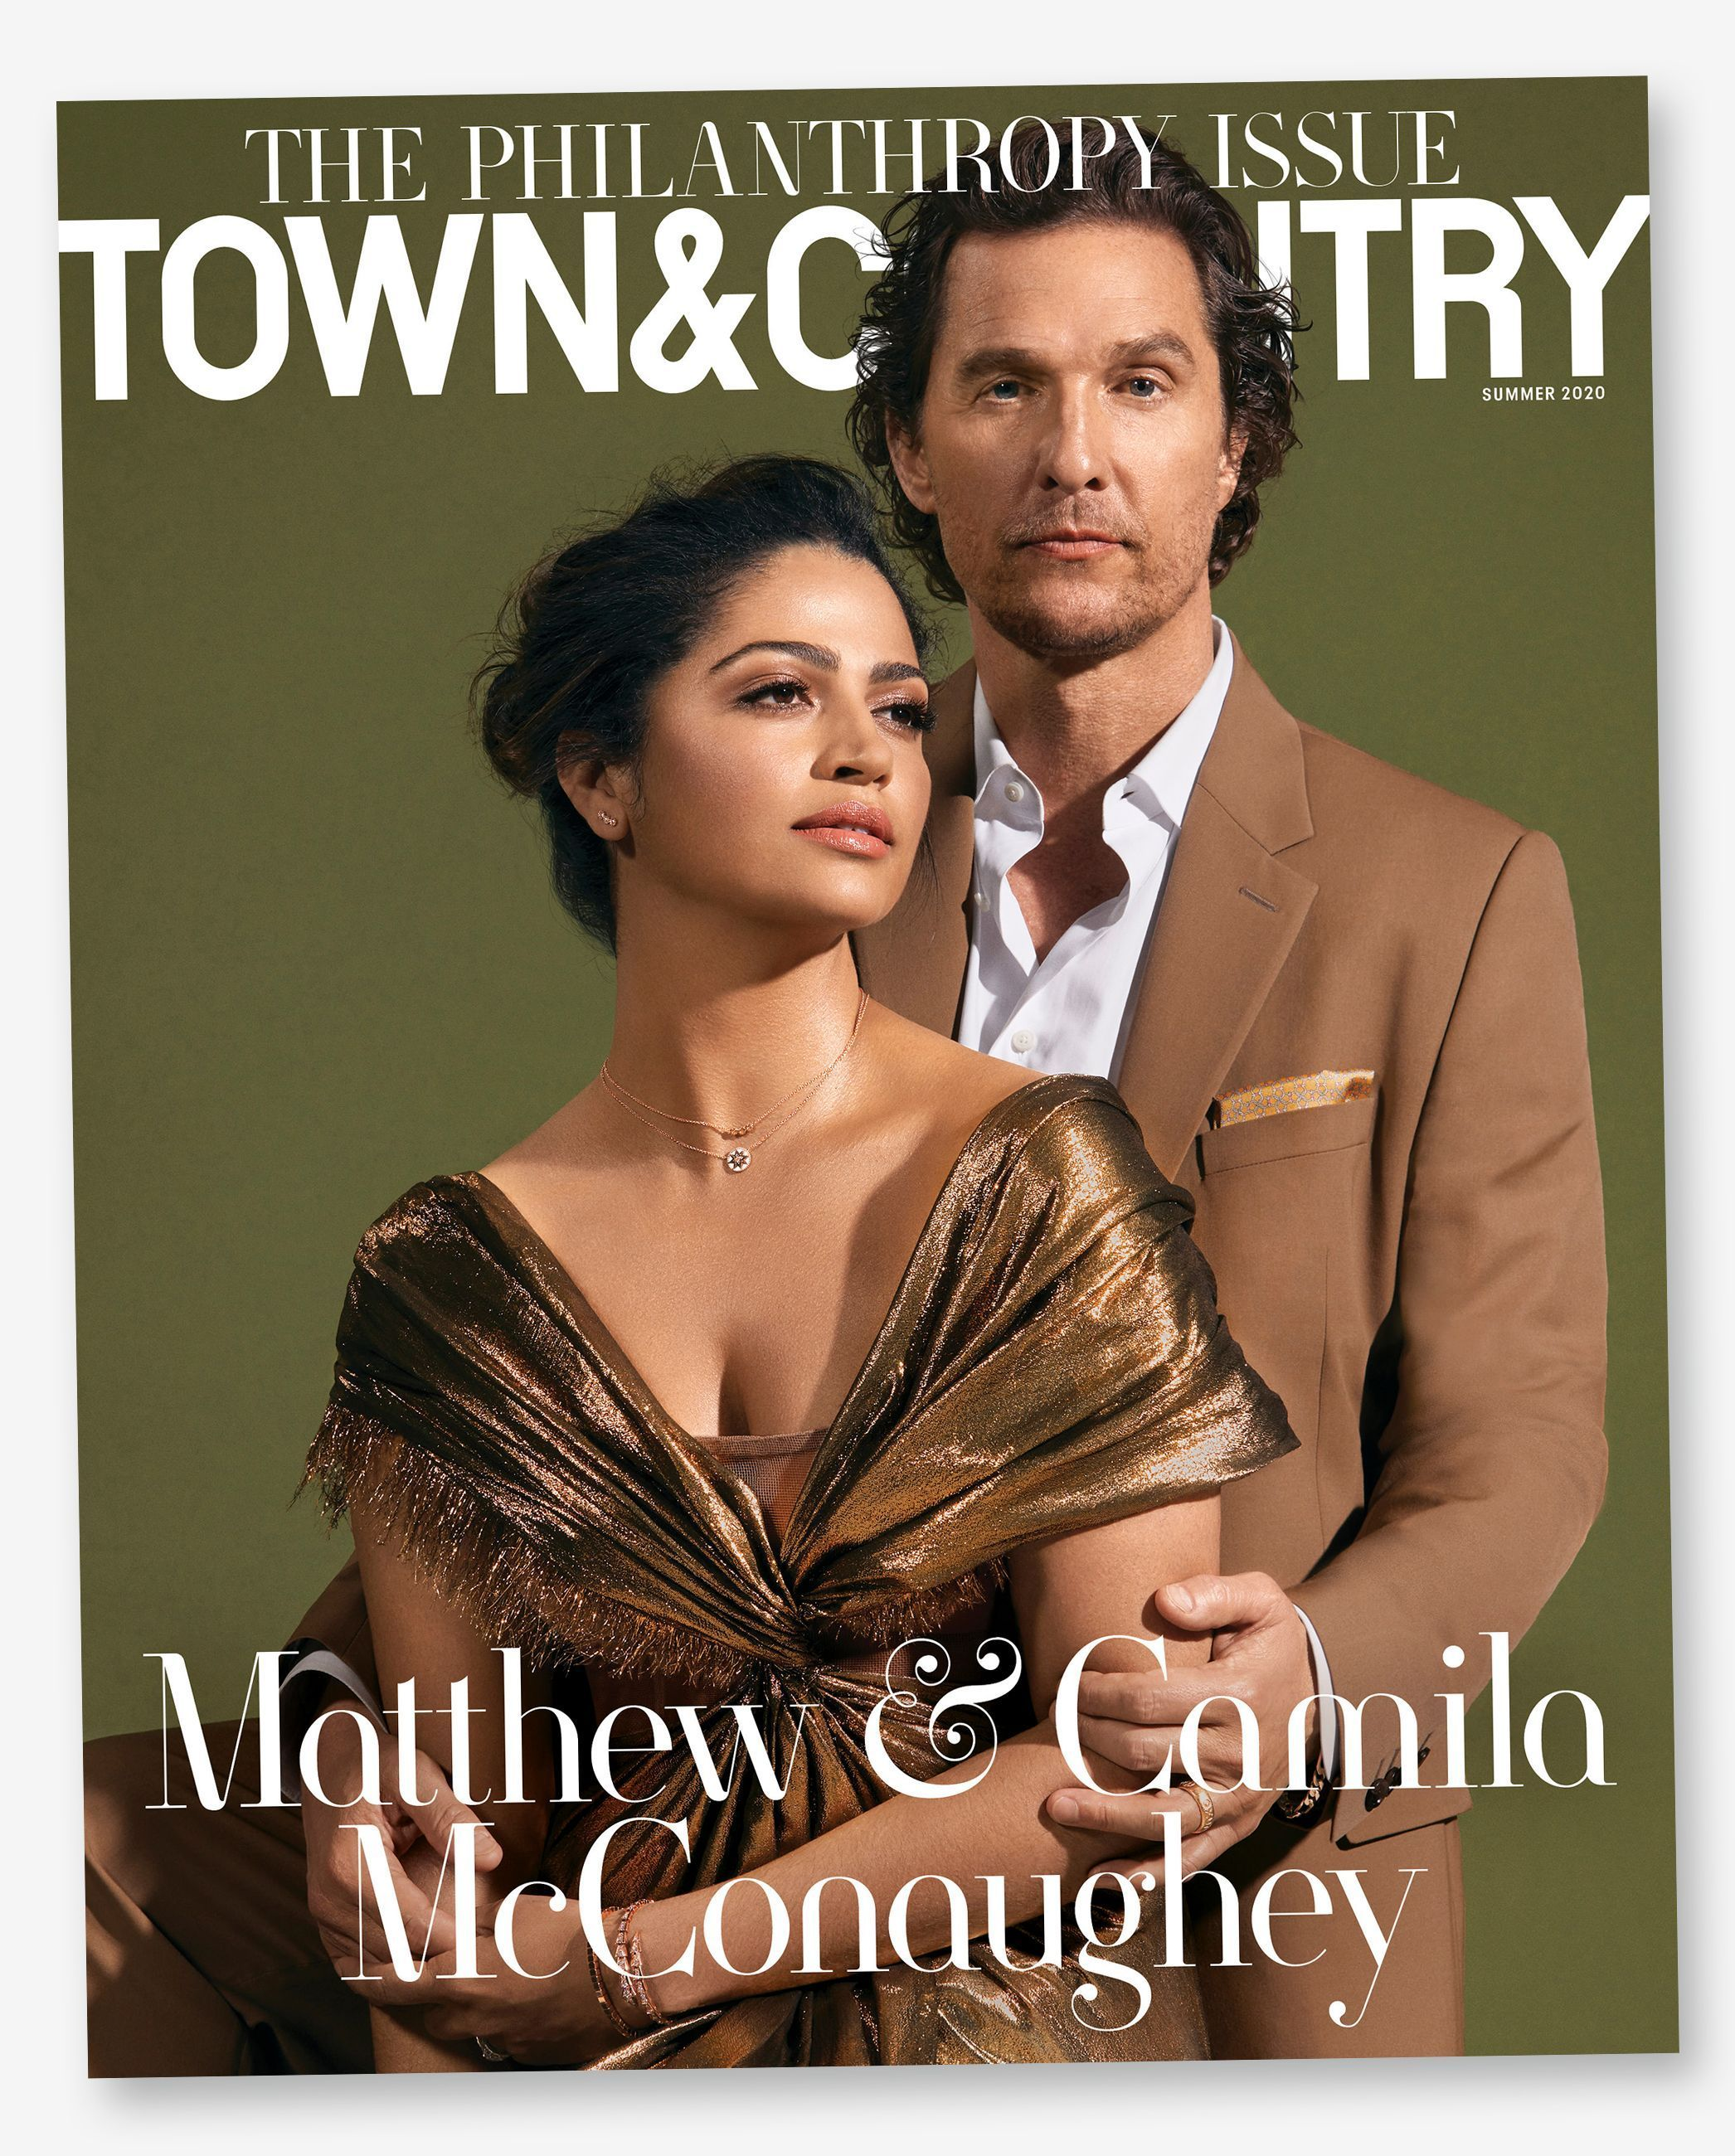 Town & Country Philanthropy Summit